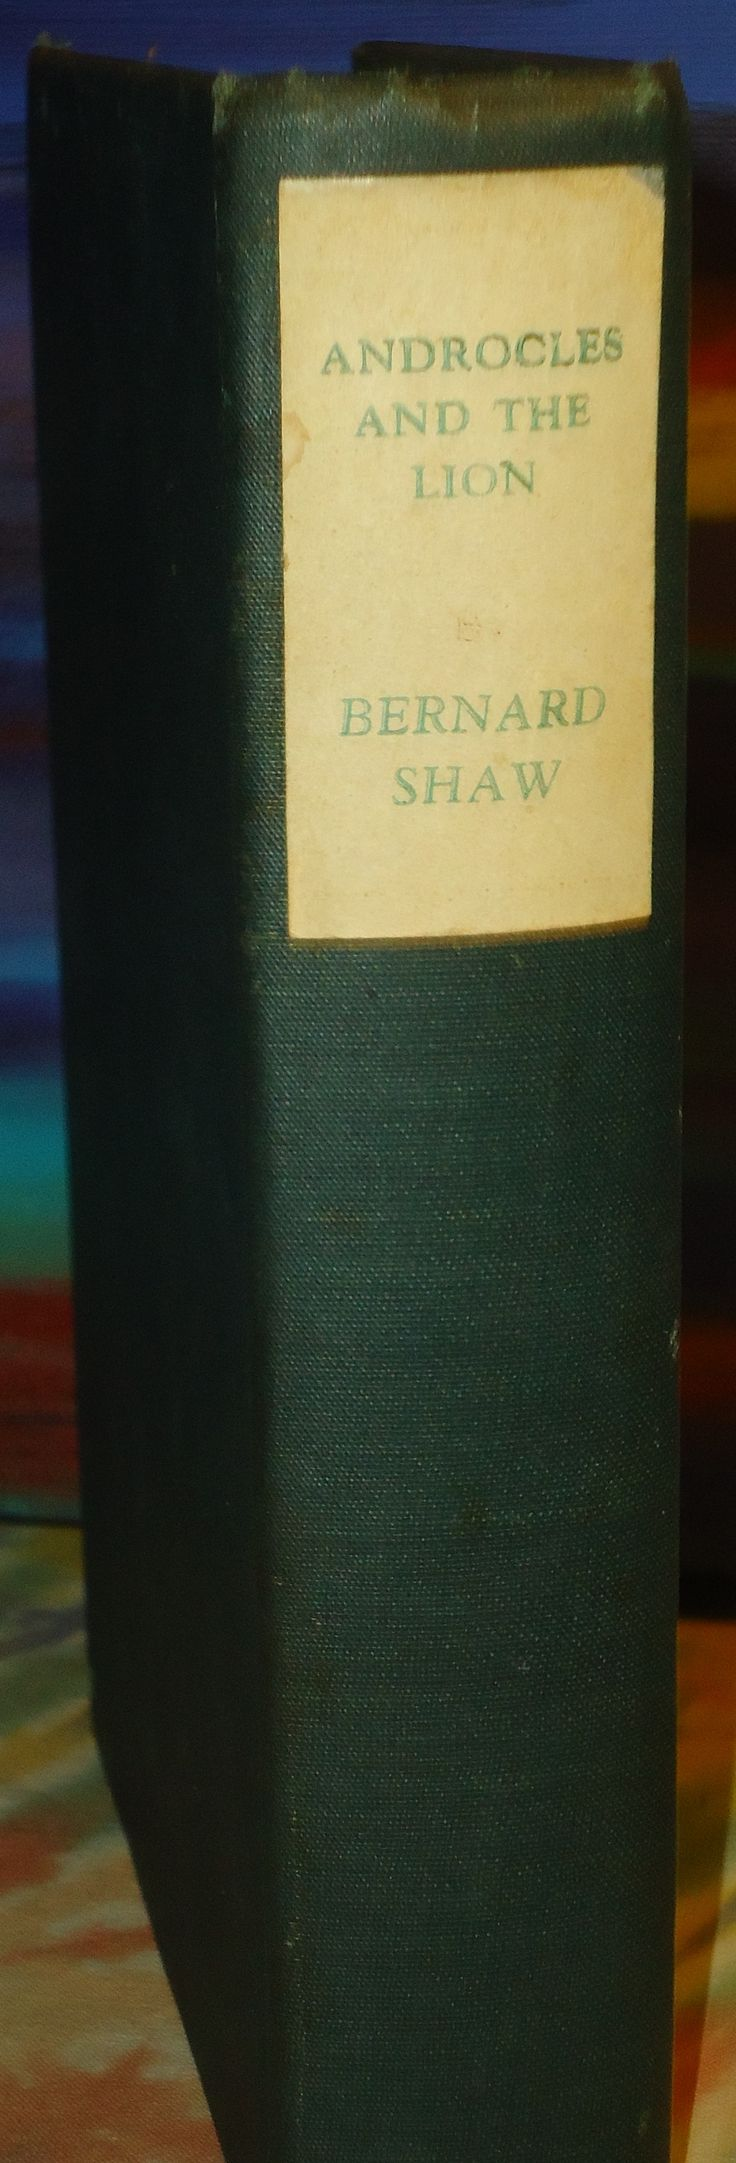 Bernard Shaw - Androcles And The Lion Overruled Pygmalion - 1916 - HC Book